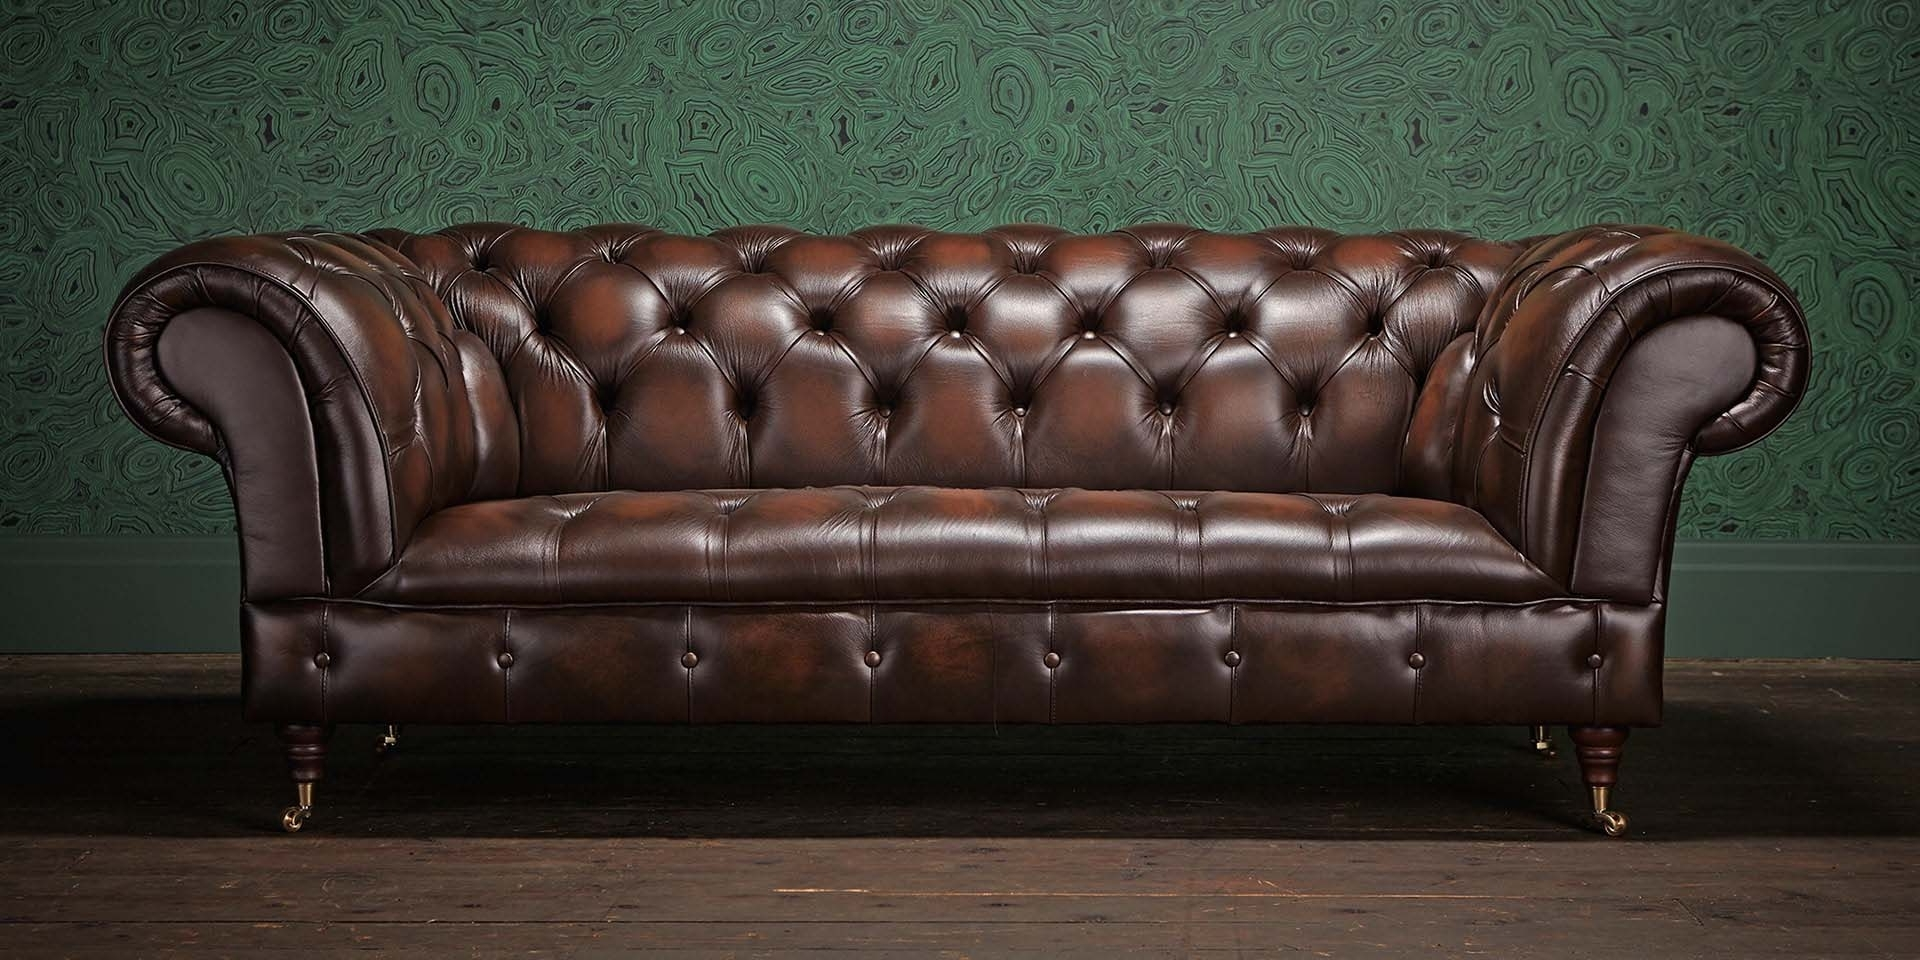 Leather Chesterfield Sofas Regarding Current 4 Vital Things To Look For In A Leather Chesterfield Sofa – Blogbeen (View 9 of 20)